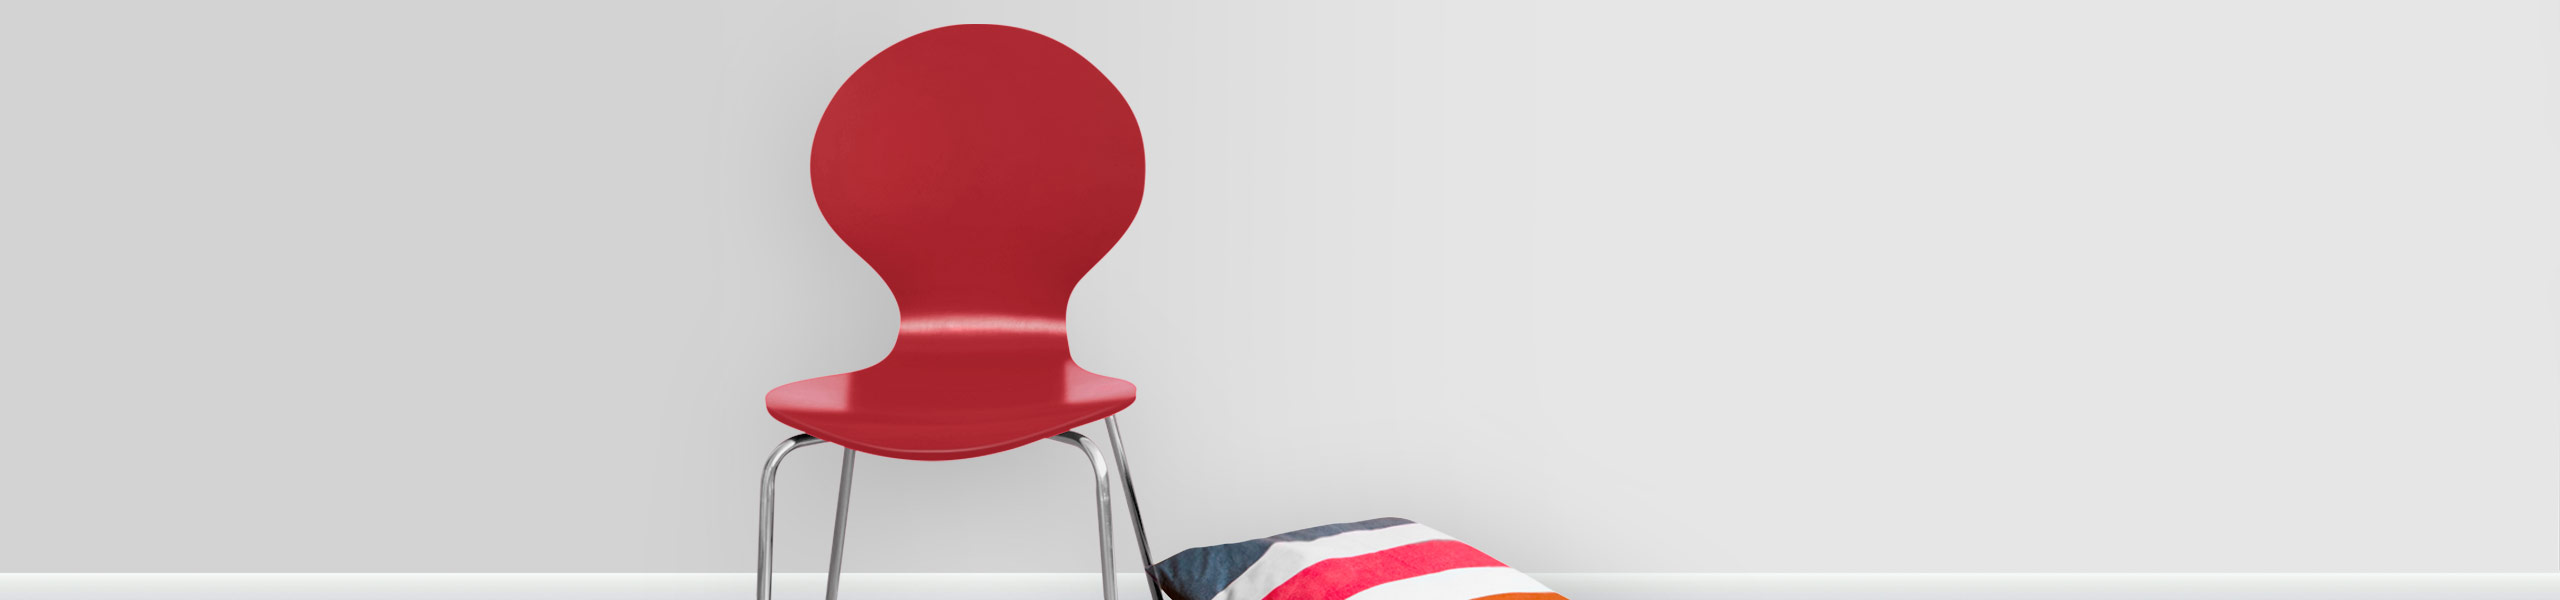 Candy Chair Red Video Banner